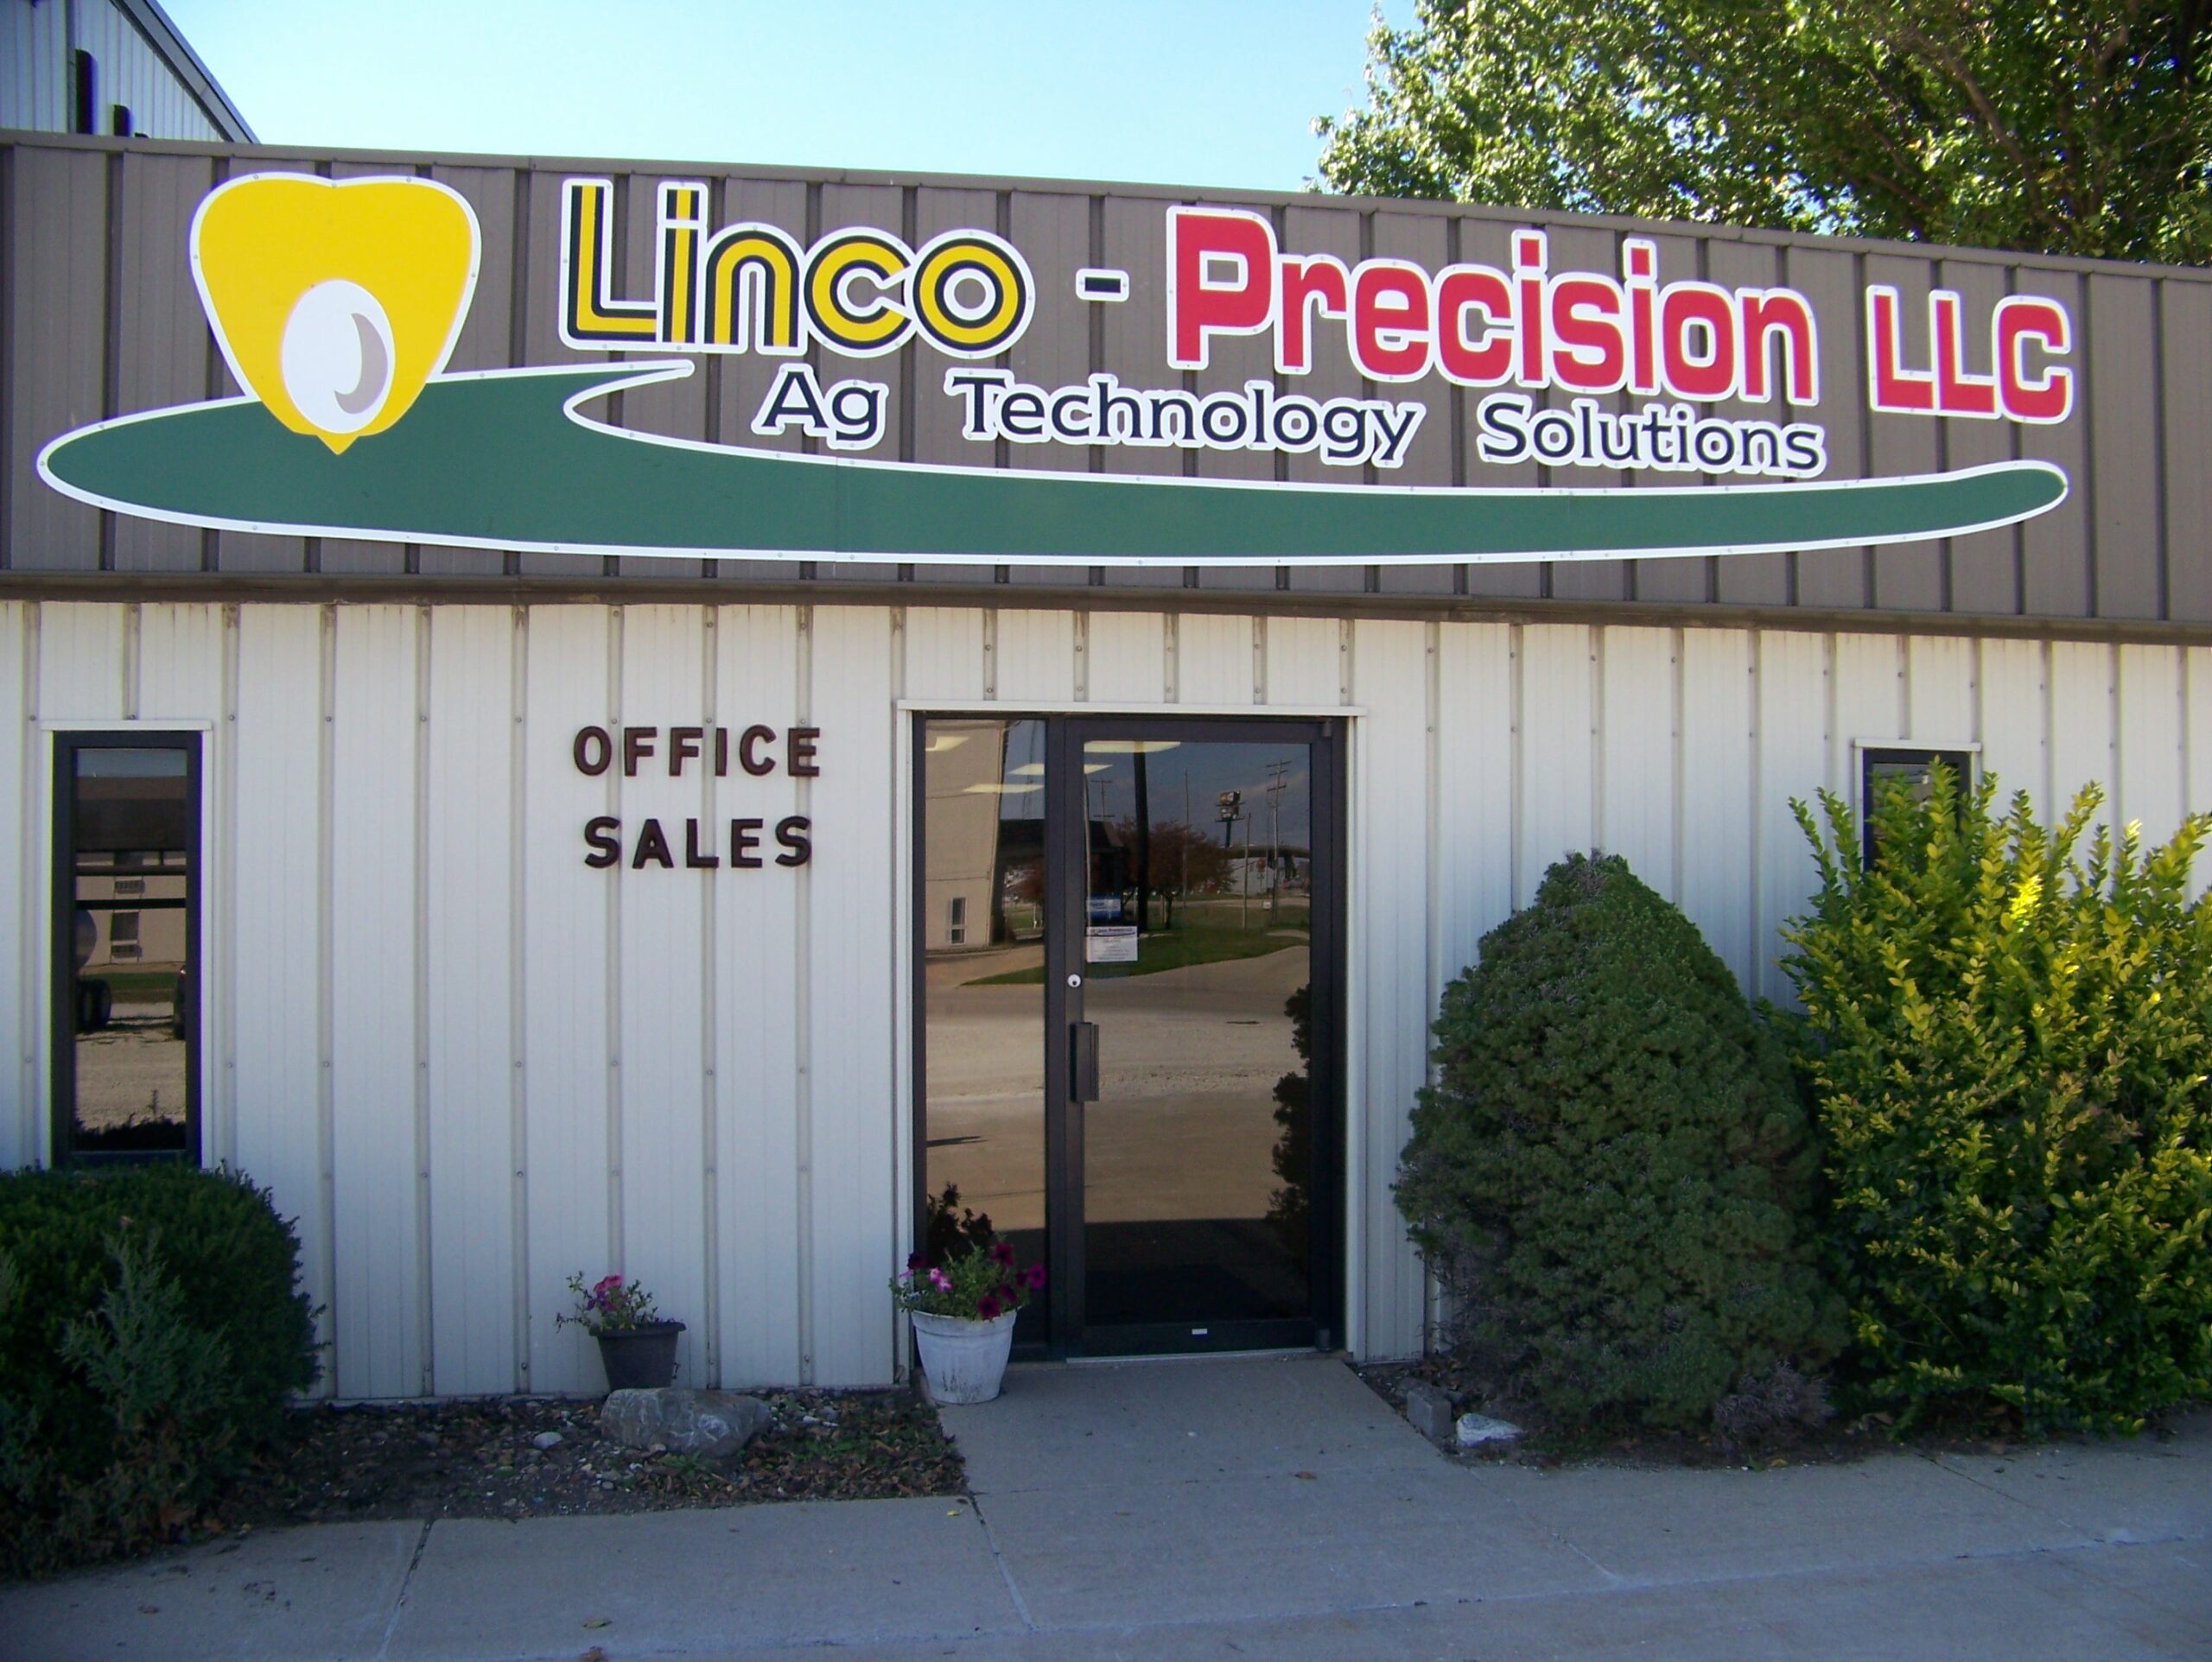 Linco Precision Llc Ag Technology Solutions